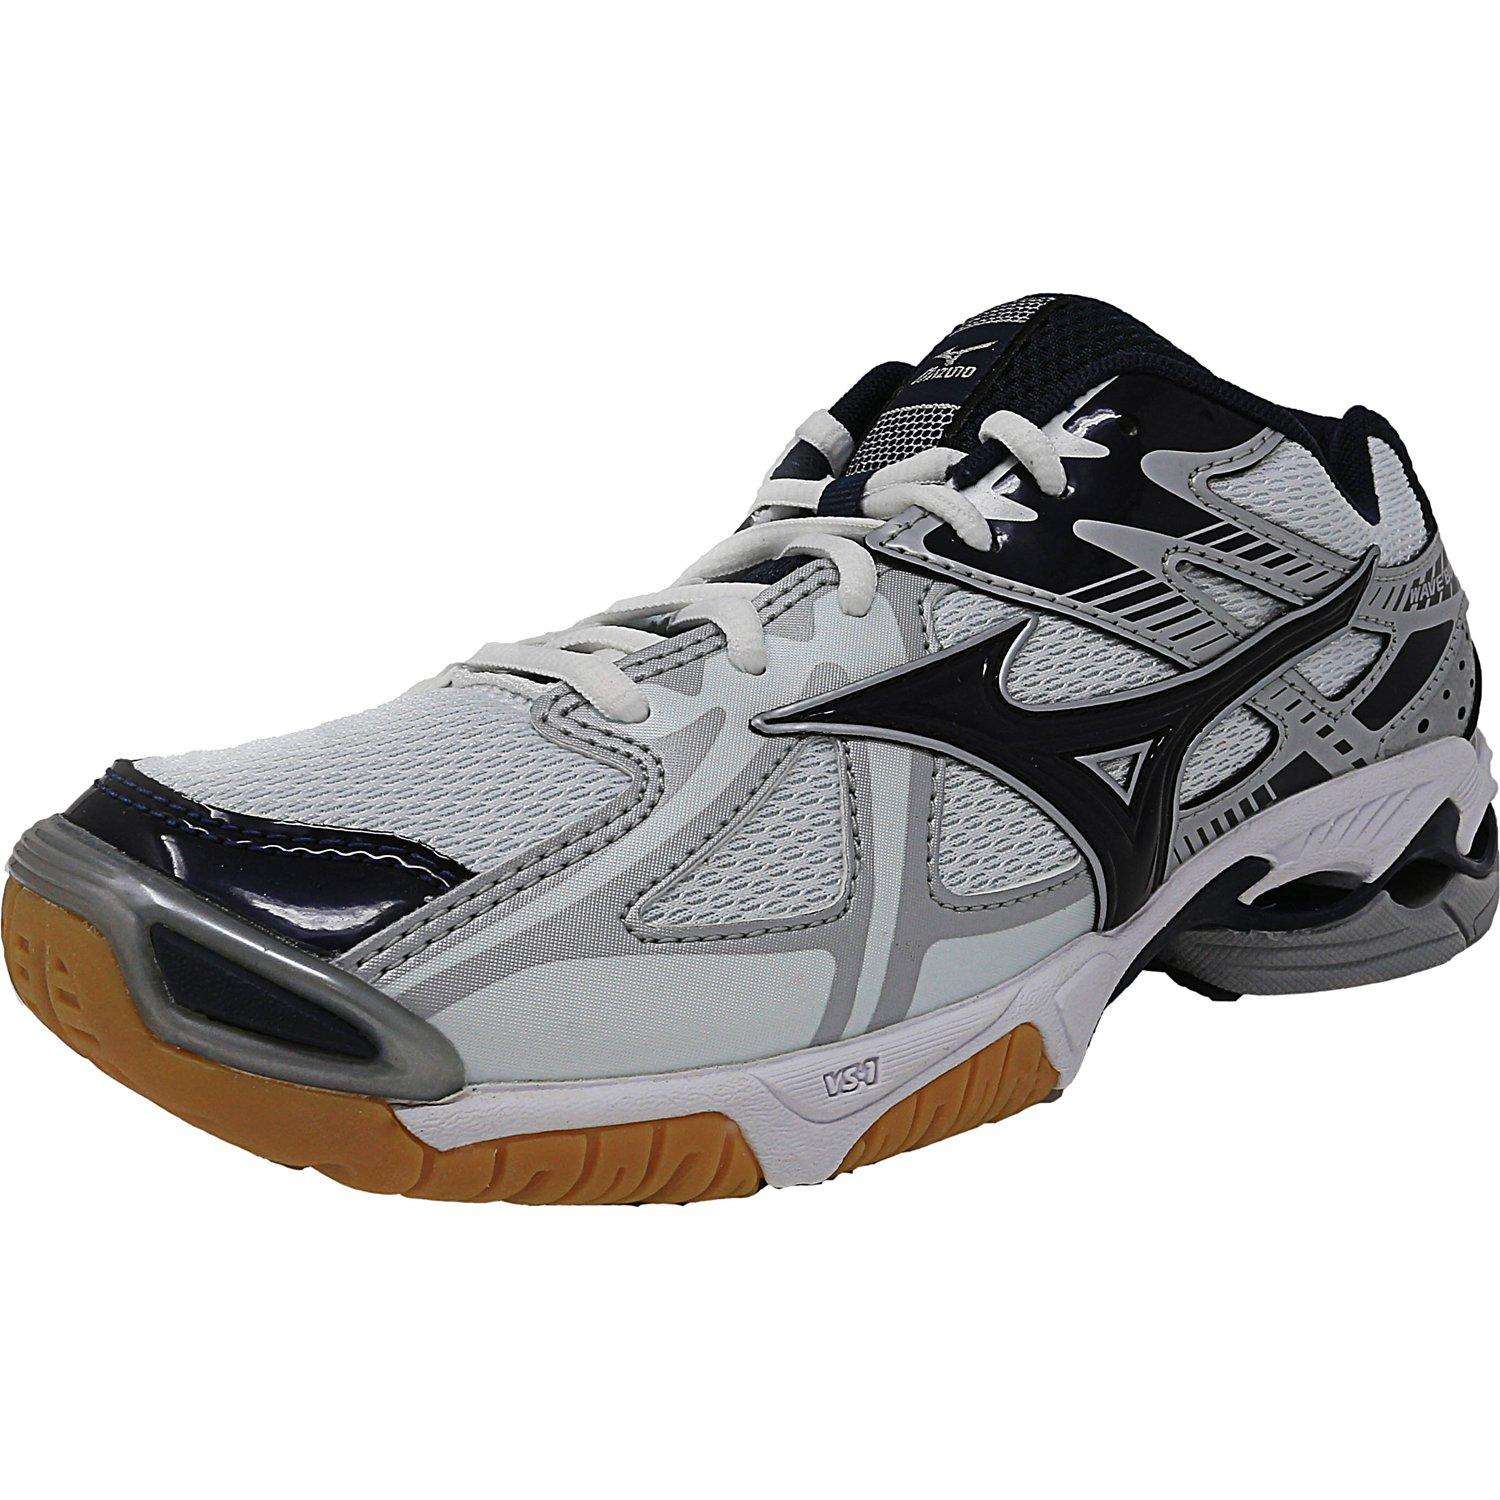 Mizuno Women's Wave Bolt 4 Black Silver Grey Ankle-High Running Shoe 11M by Mizuno